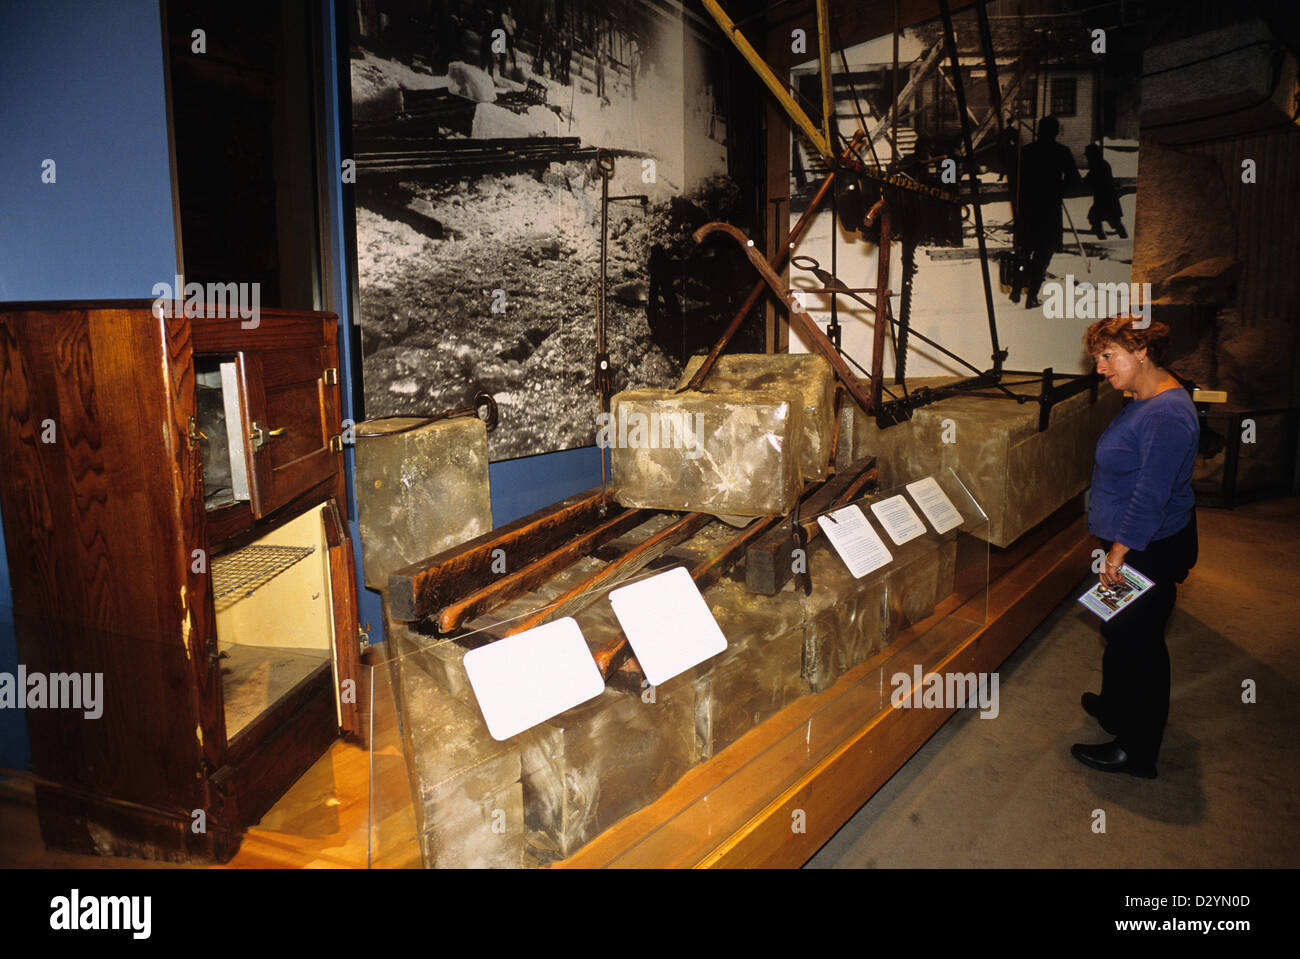 Elk282-1027 Maine, Augusta, Maine State Museum, woman viewing ice cutting exhibit - Stock Image